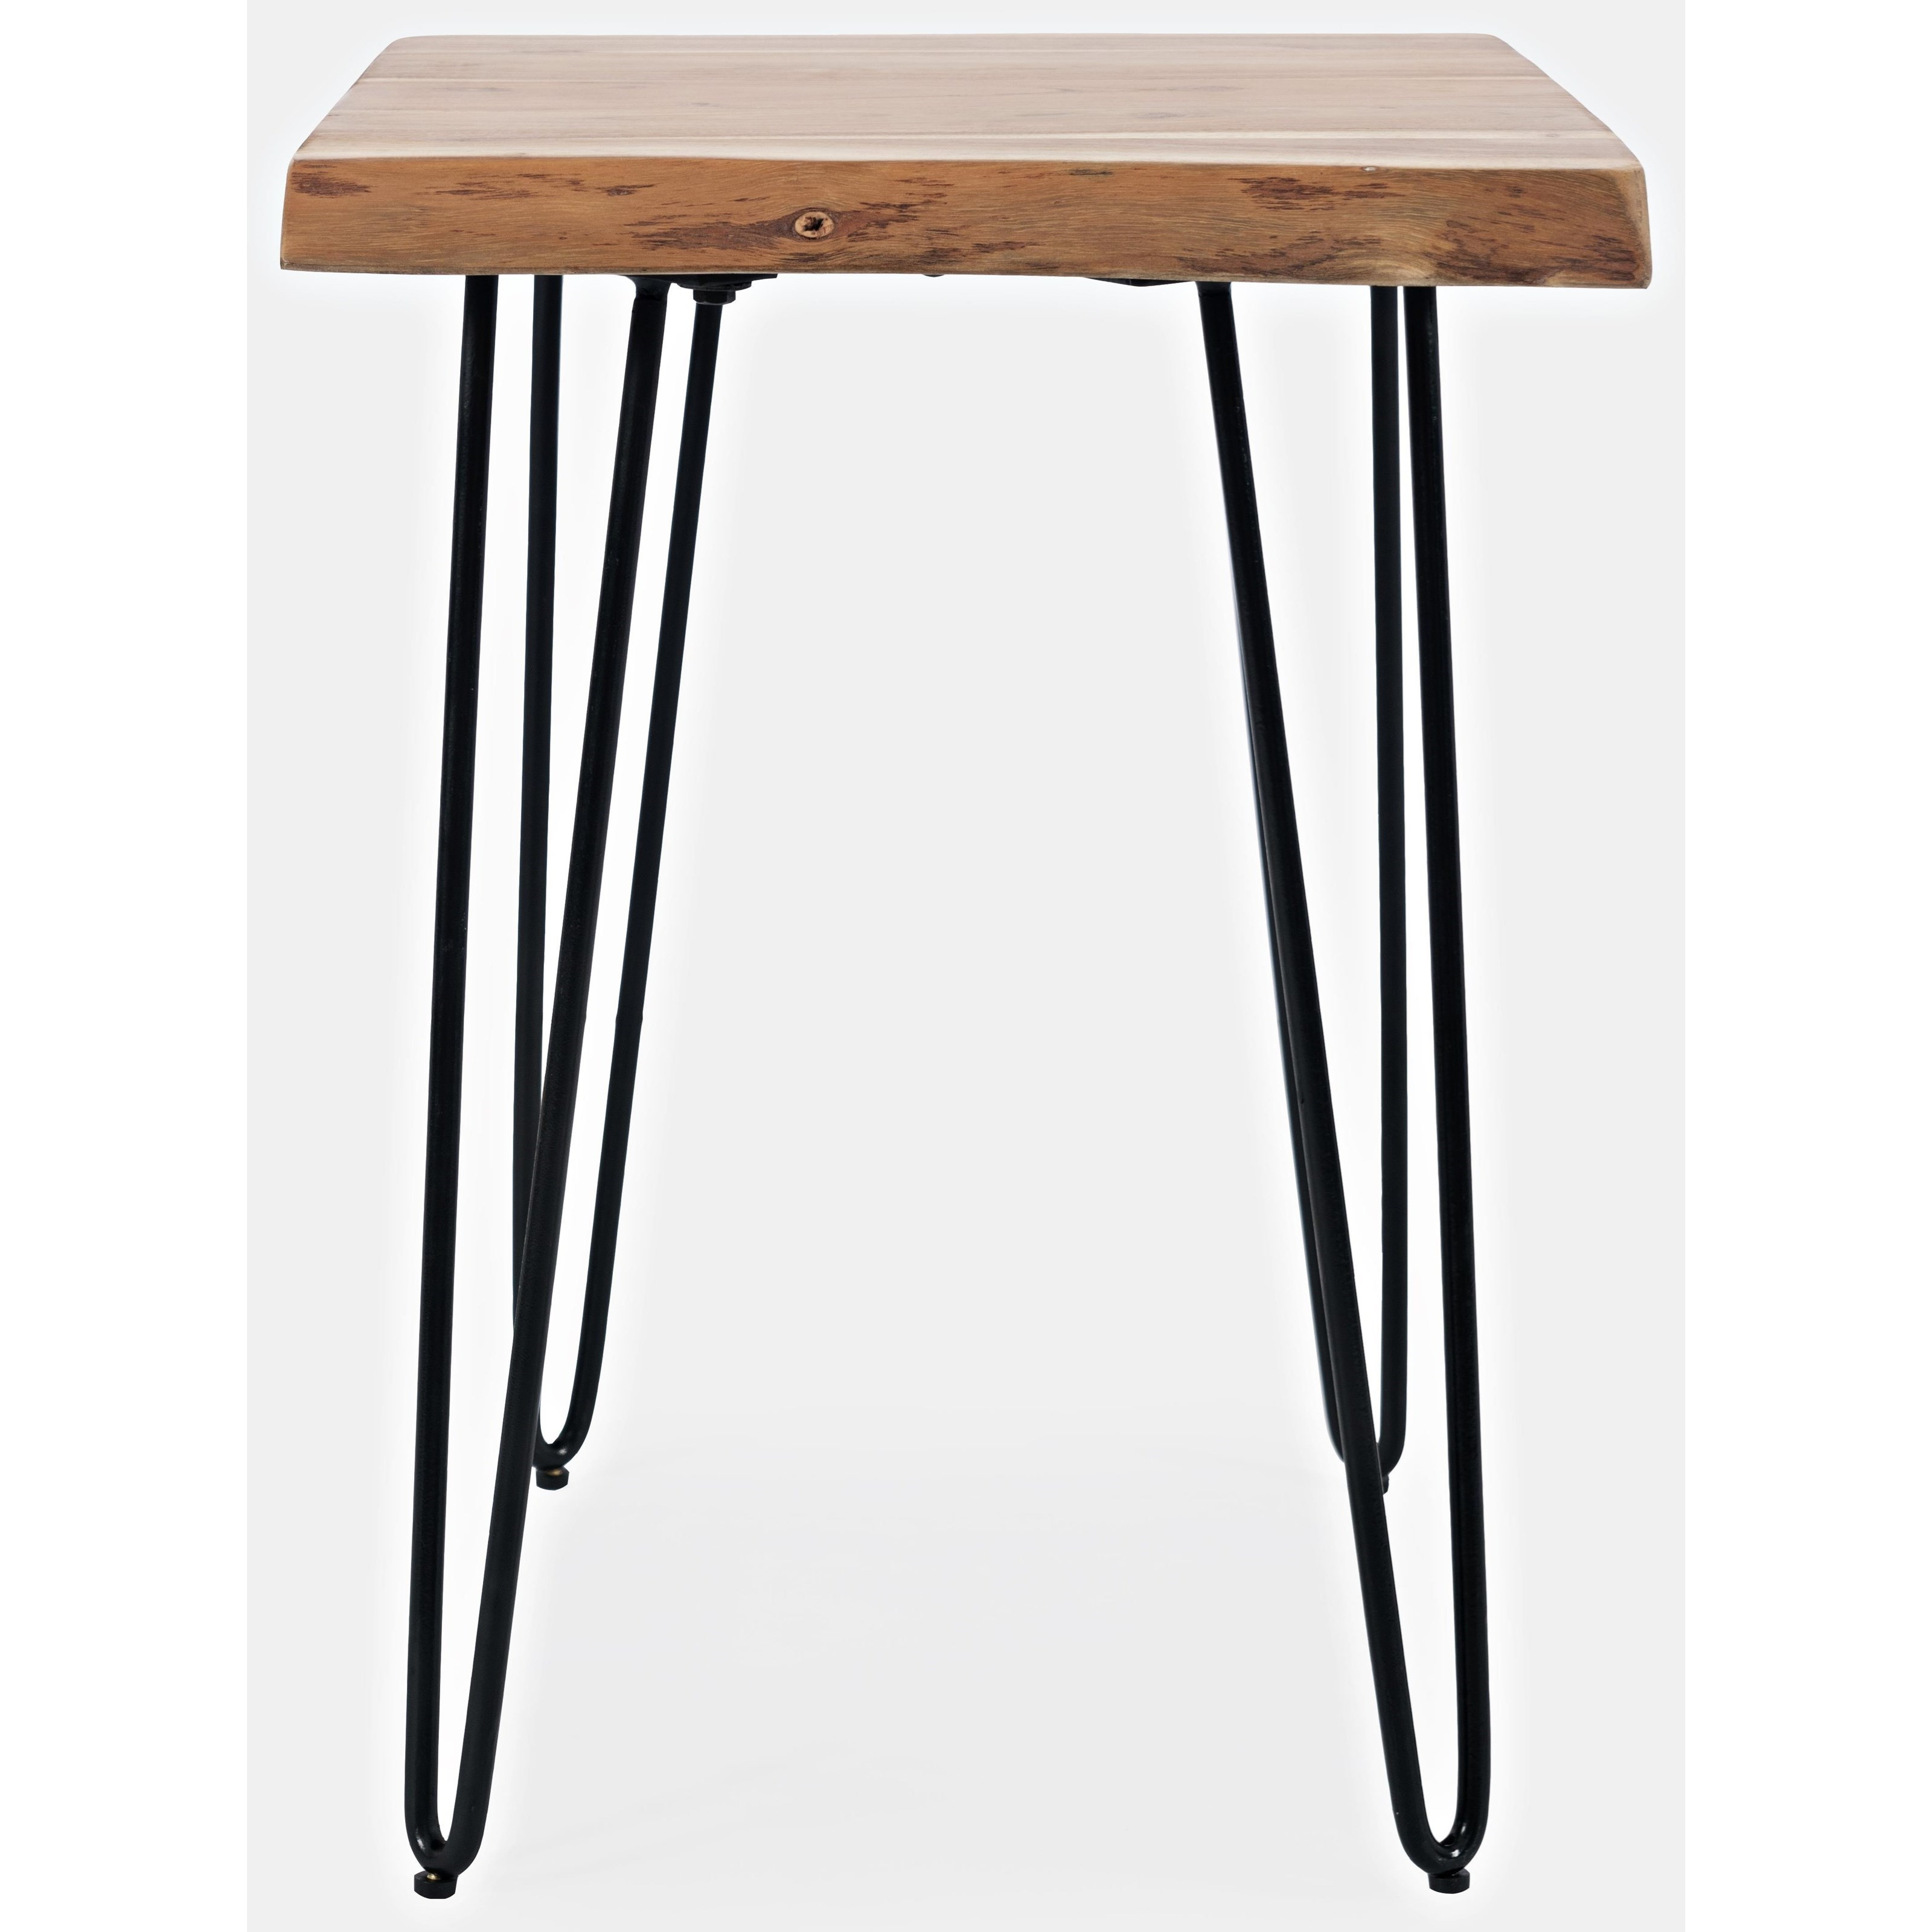 Nature's Edge Live Edge Chairside Table by Jofran at Jofran